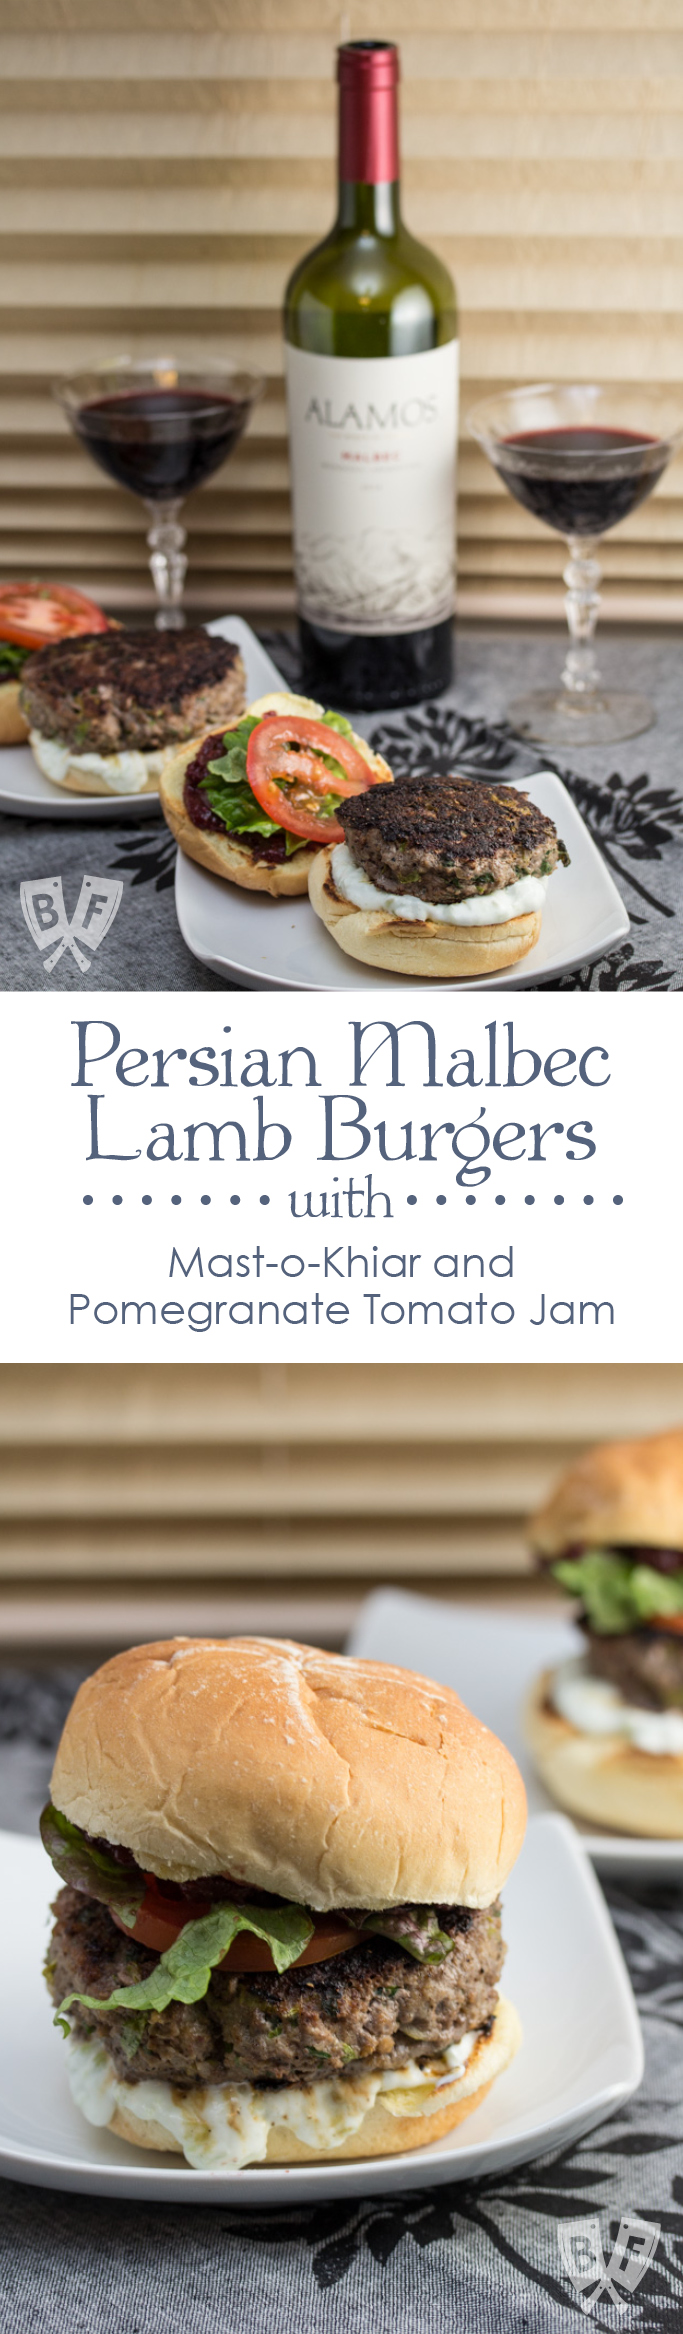 Persian Malbec Lamb Burgers with Mast-o-Khiar and Pomegranate Tomato Jam: Red wine deepens the flavors in both the burgers and jam in this Middle Eastern spin on Adam Richman's Malbec Burger recipe.